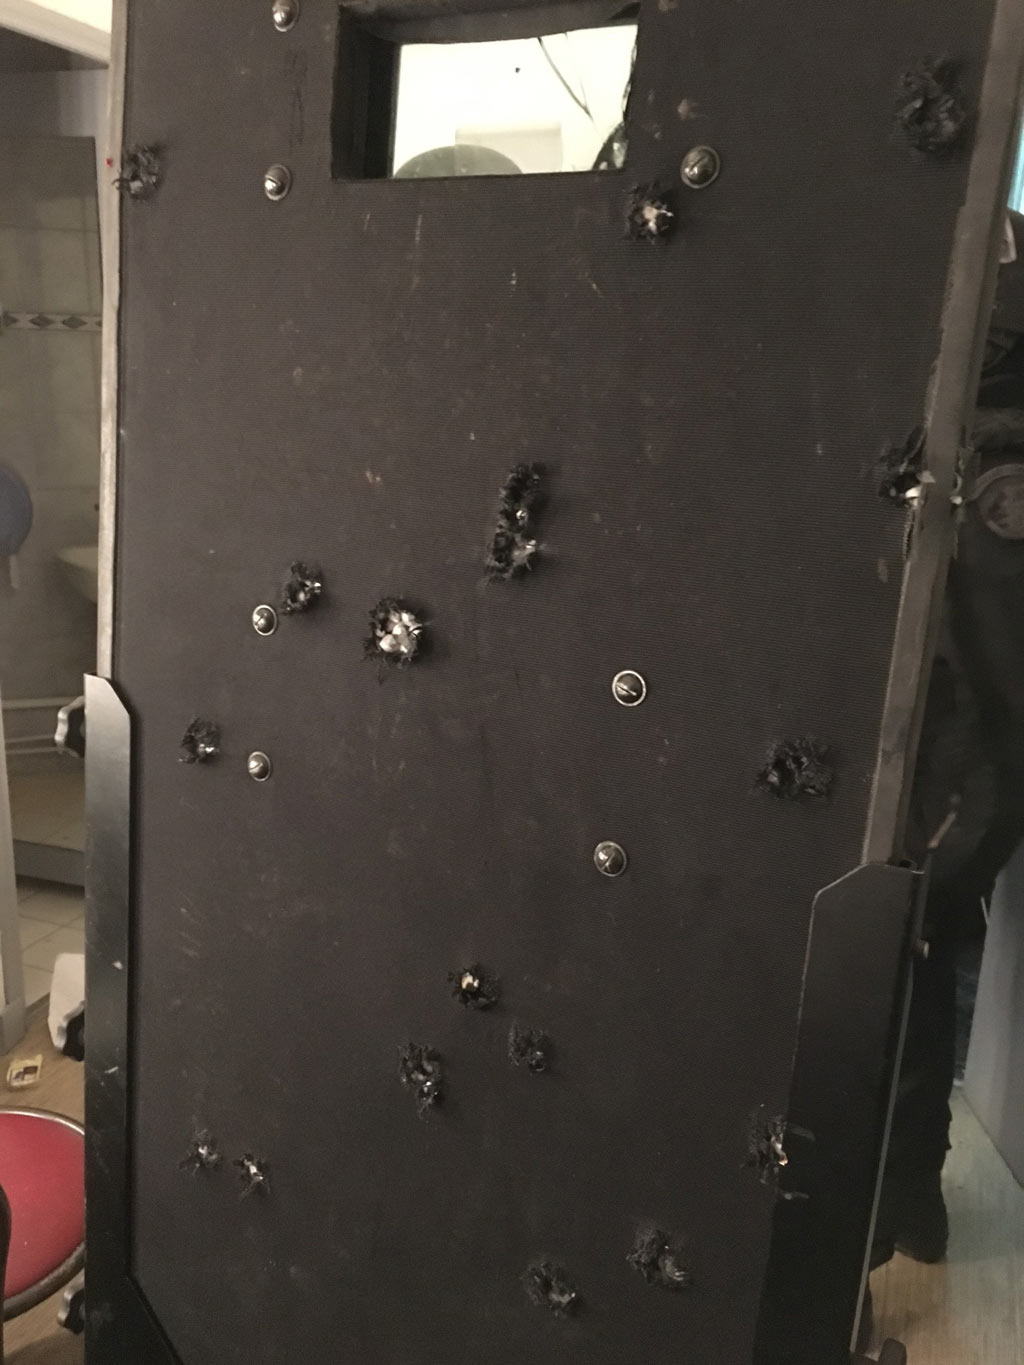 The shield that stopped 27 bullets during the Bataclan theatre raid